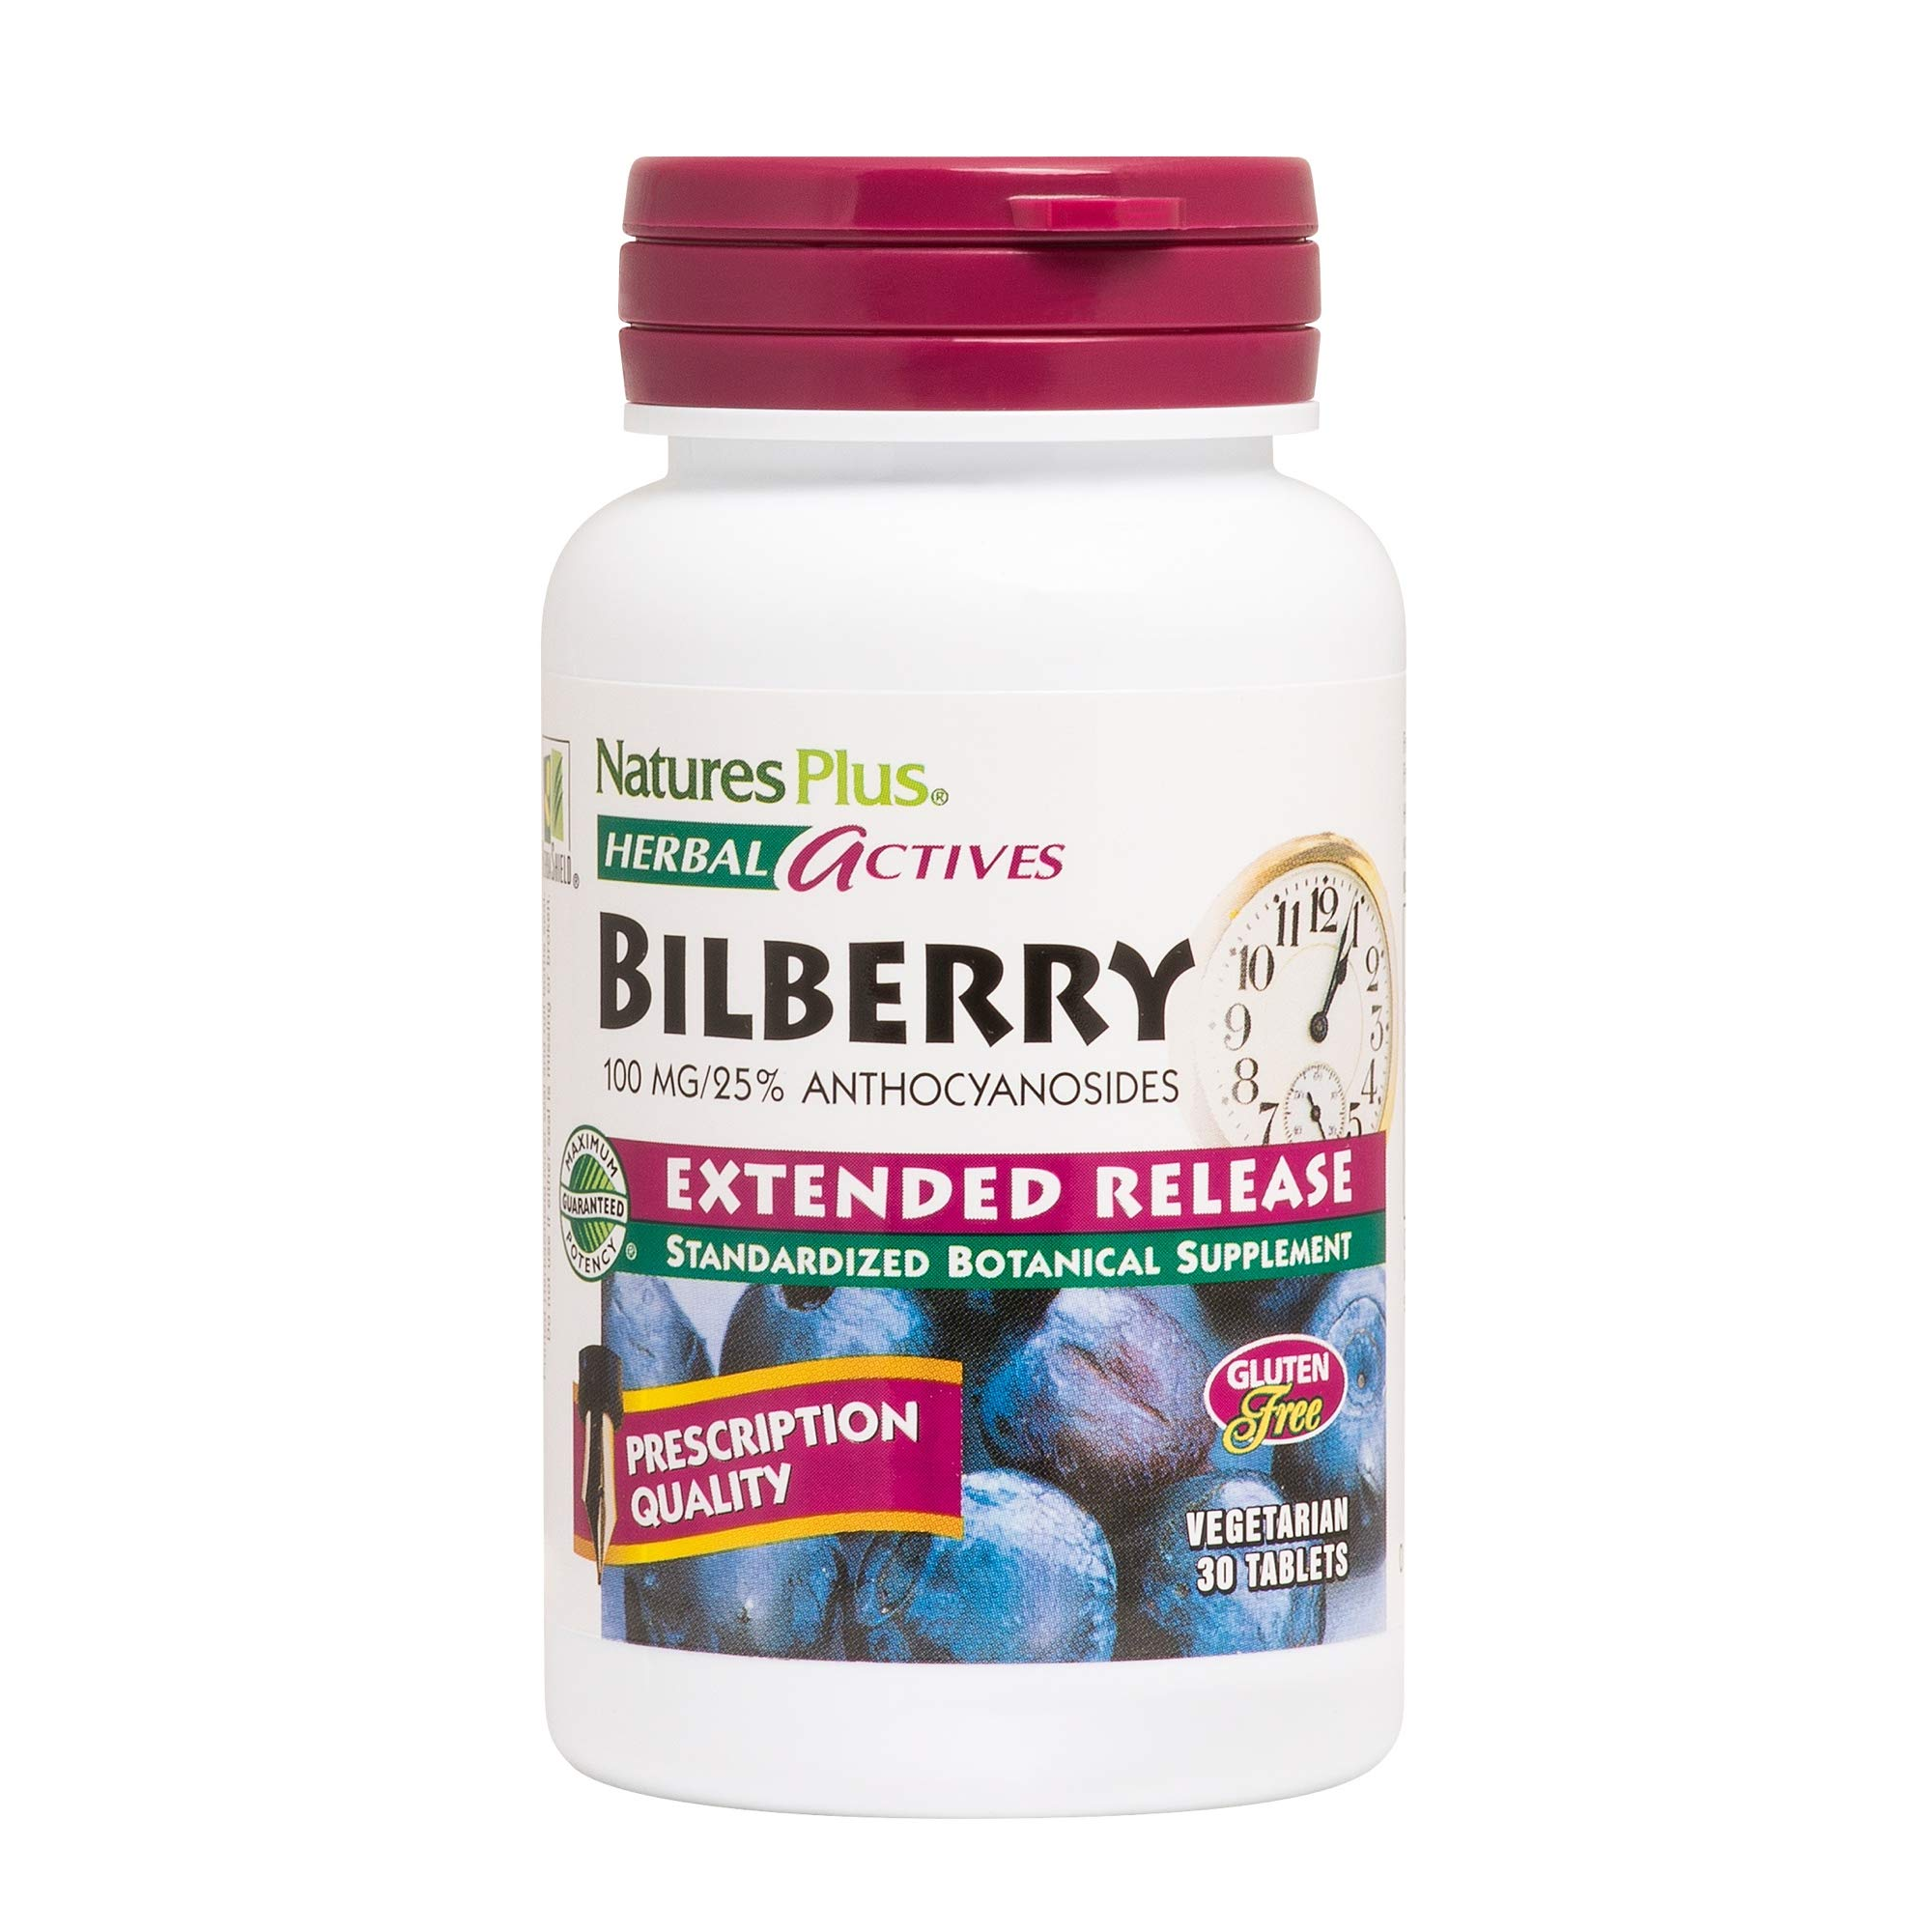 NaturesPlus Herbal Actives Bilberry - 100 mg, 25% Anthocyanosides - 30 Vegan Tablets, Extended Release - Supports Healthy Eye Function - Hypoallergenic, Vegetarian, Gluten-Free - 30 Servings